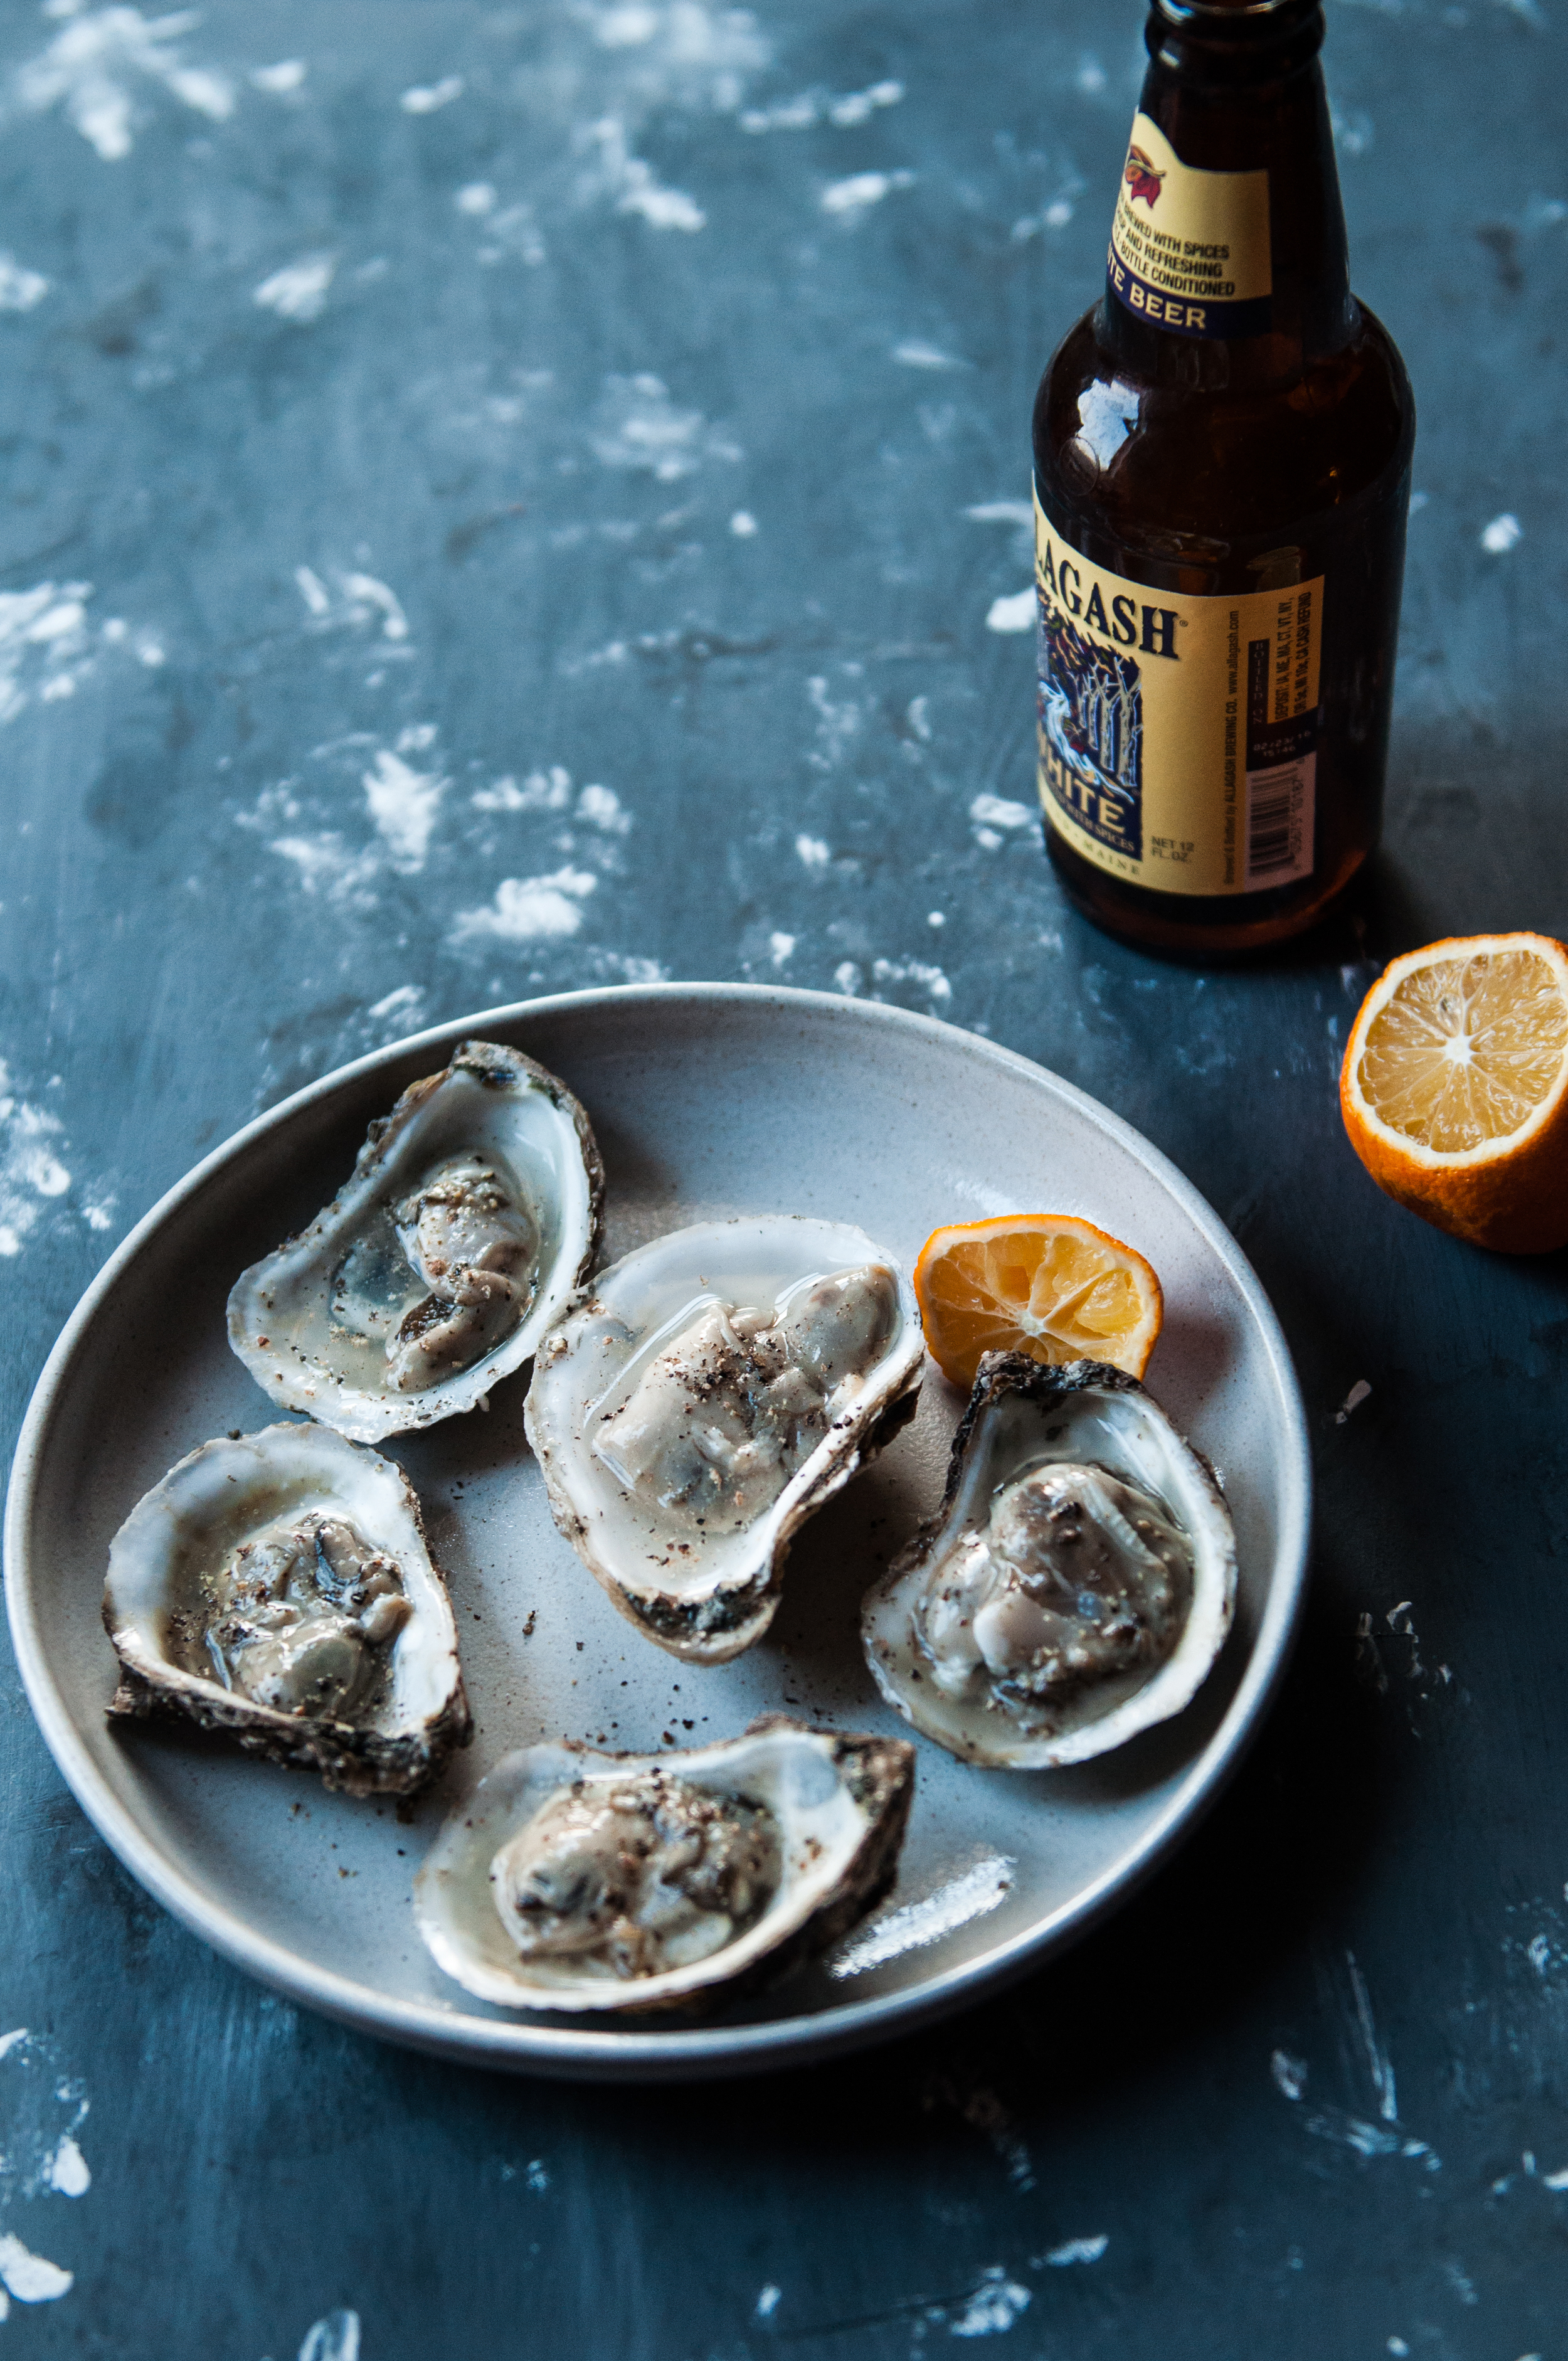 Fresh oysters in their own brine with a dash of pepper and squeeze of meyer lemon is one of my favorites! It's simple, clean and fresh and what I have slurping on warmer week nights!